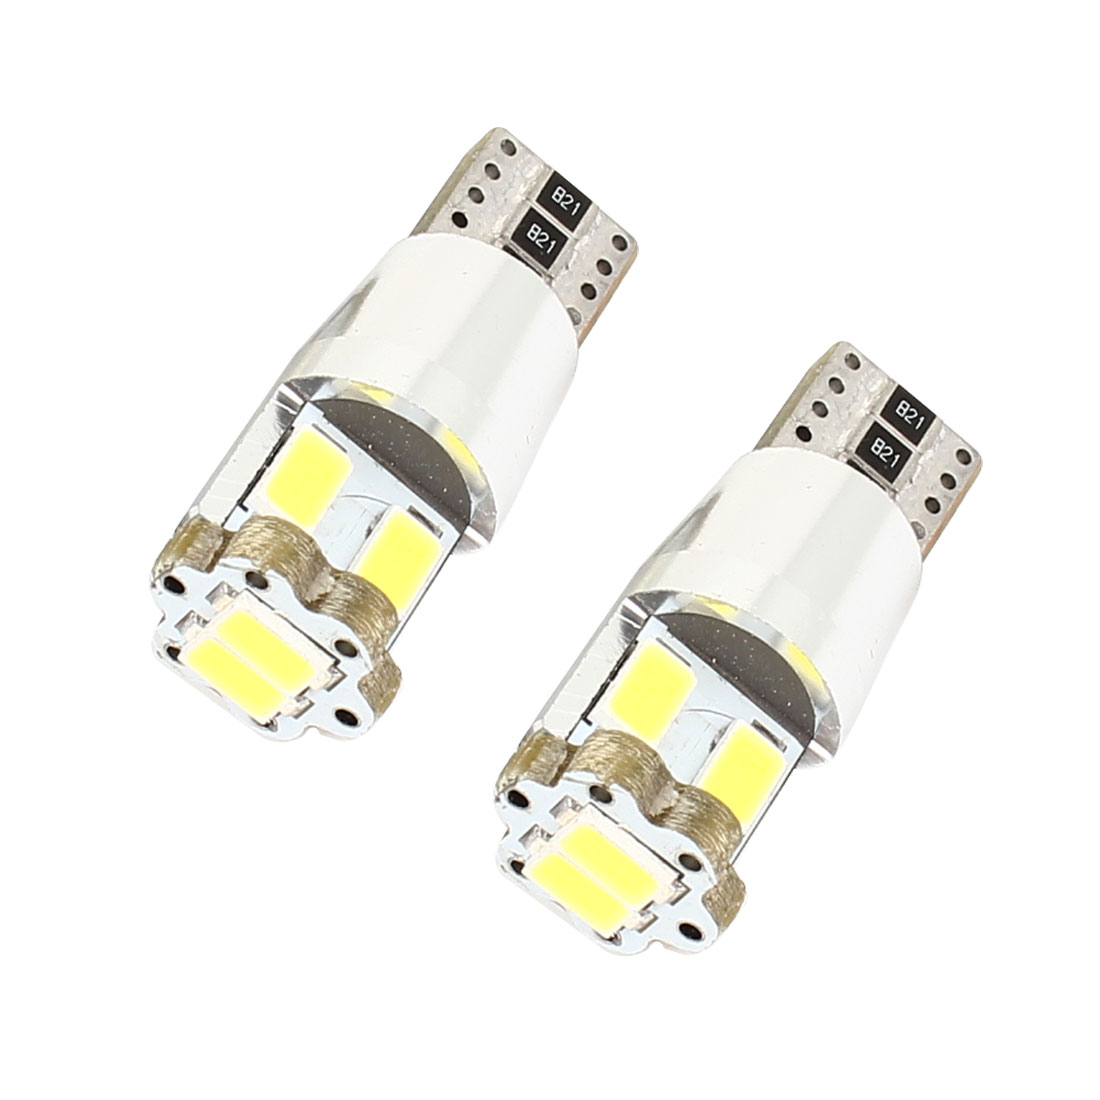 2 Pcs Car Cambus T10 W5W 194 6 5630 SMD LED Side Wedge Marker Light White 12V internal